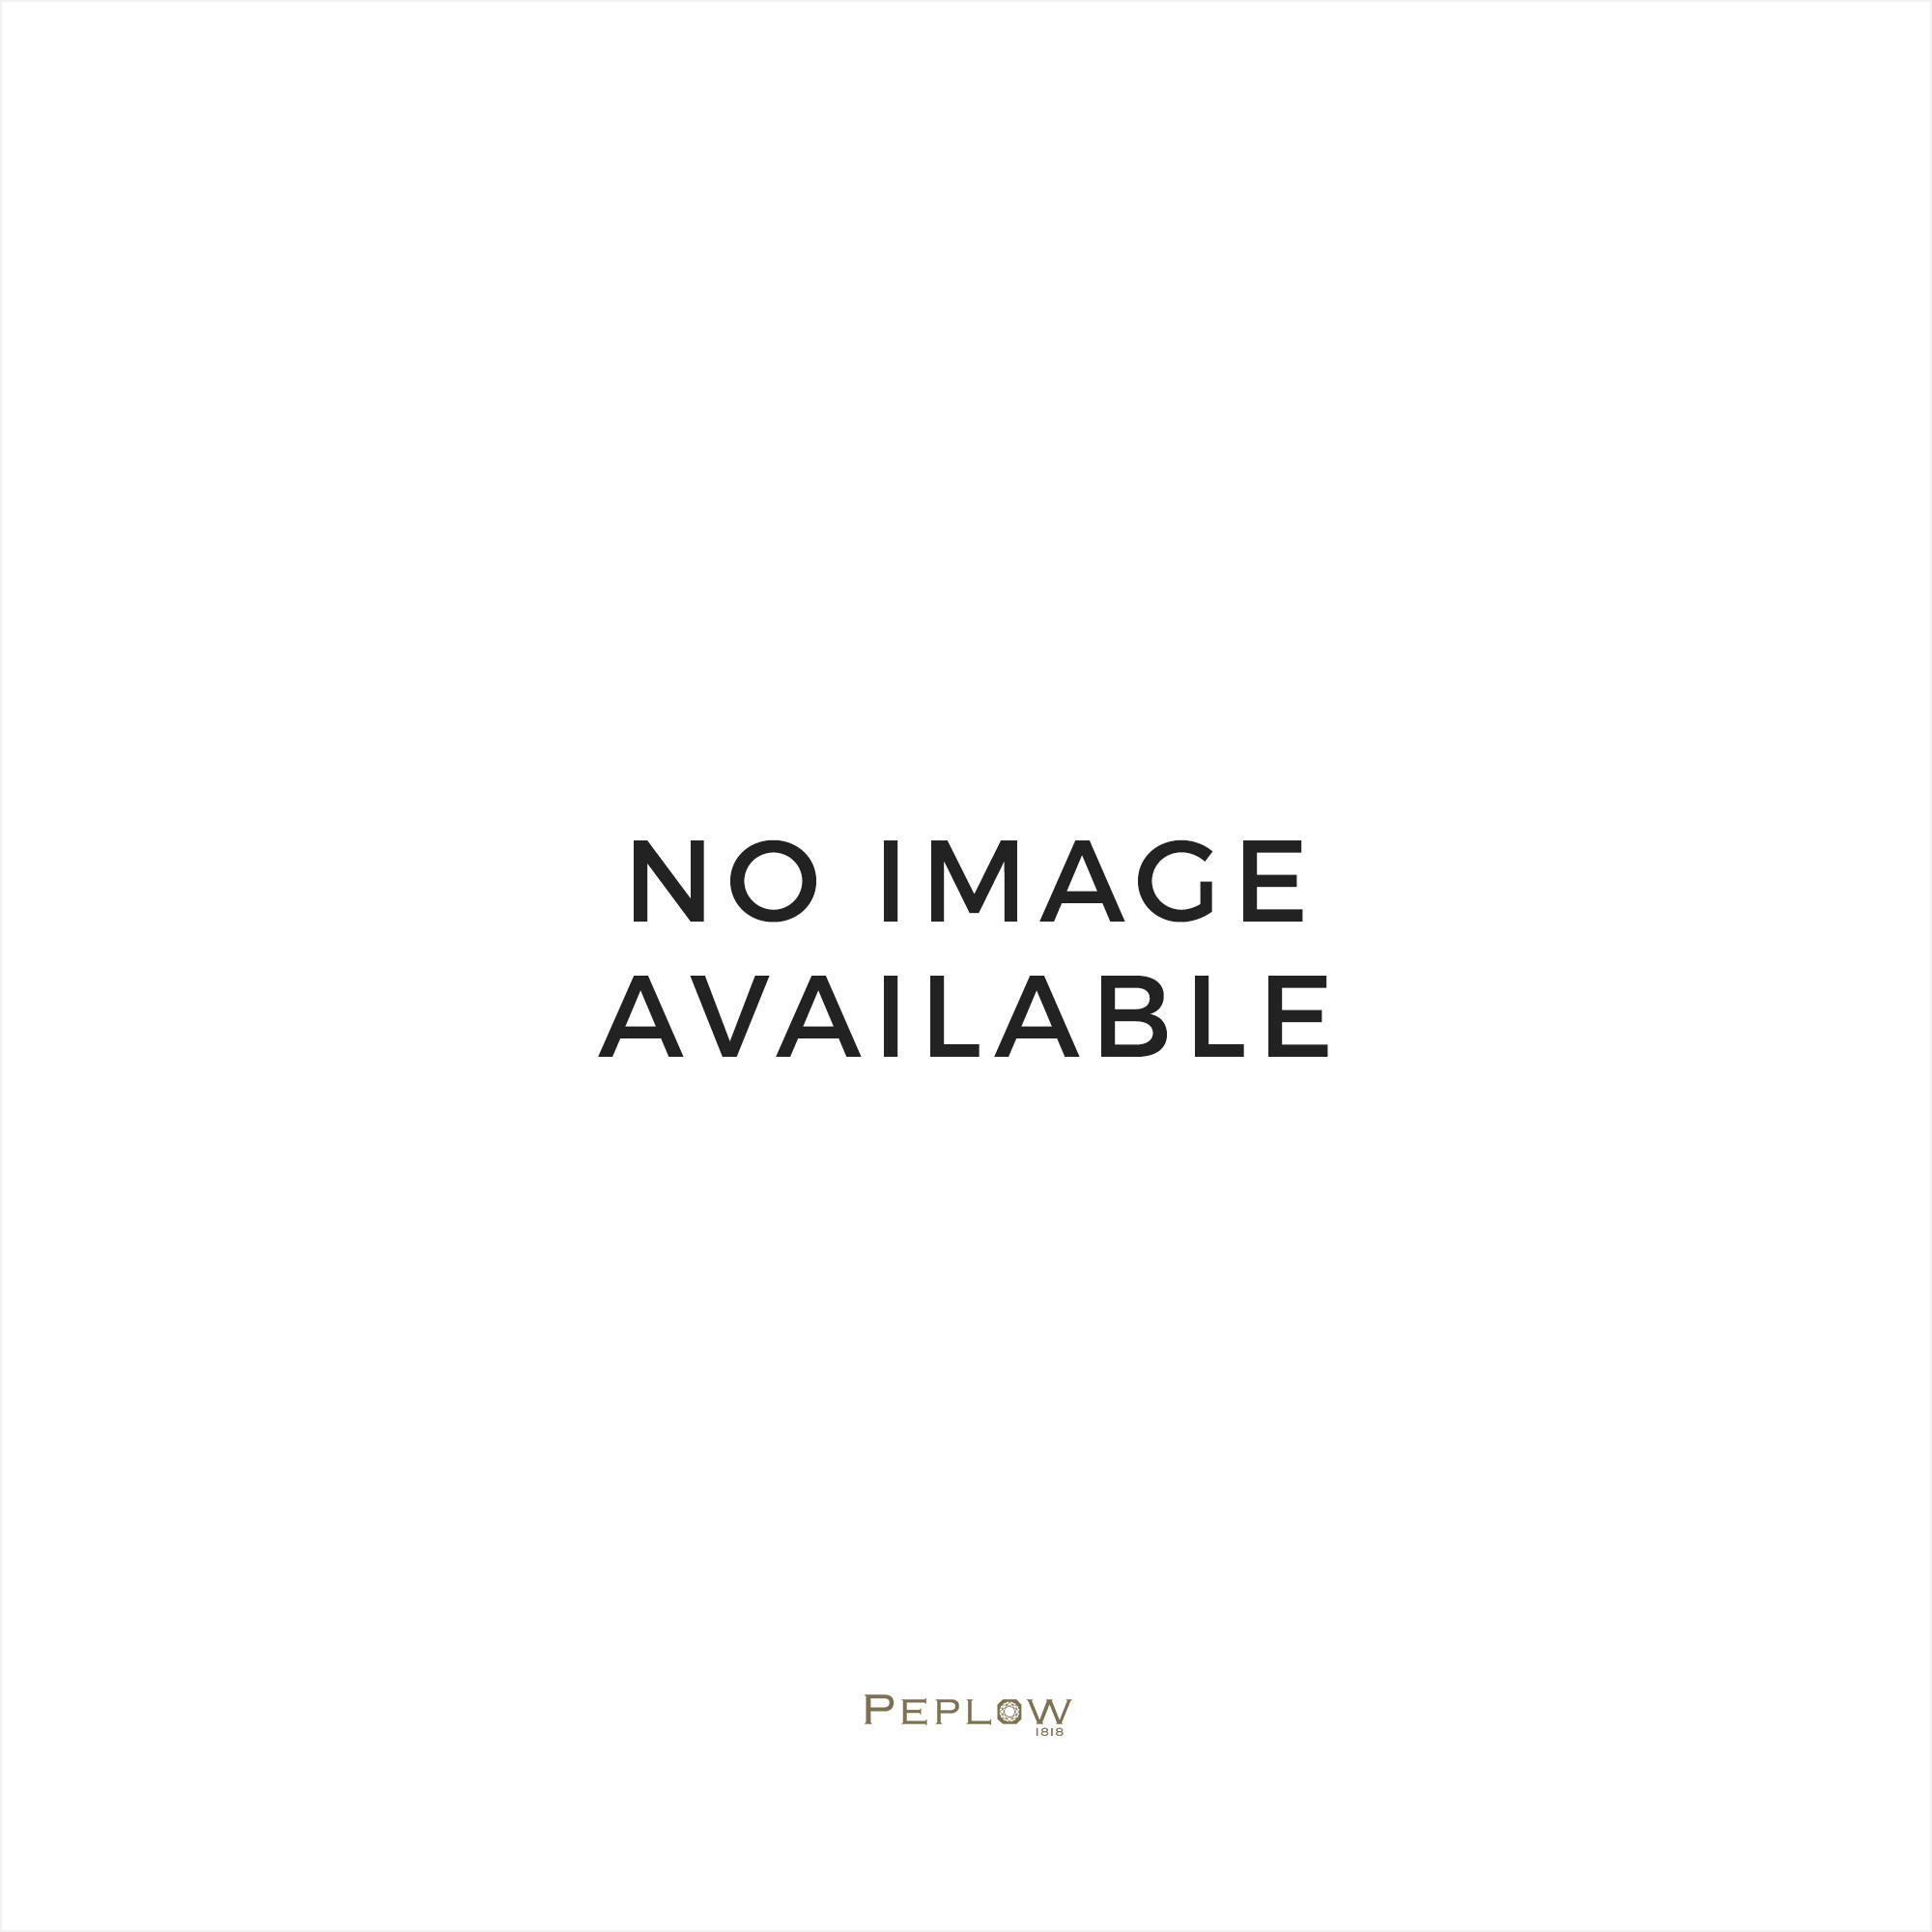 Citizen Watches Citizen Gents Perpetual Calendar Chronograph on Brown Strap